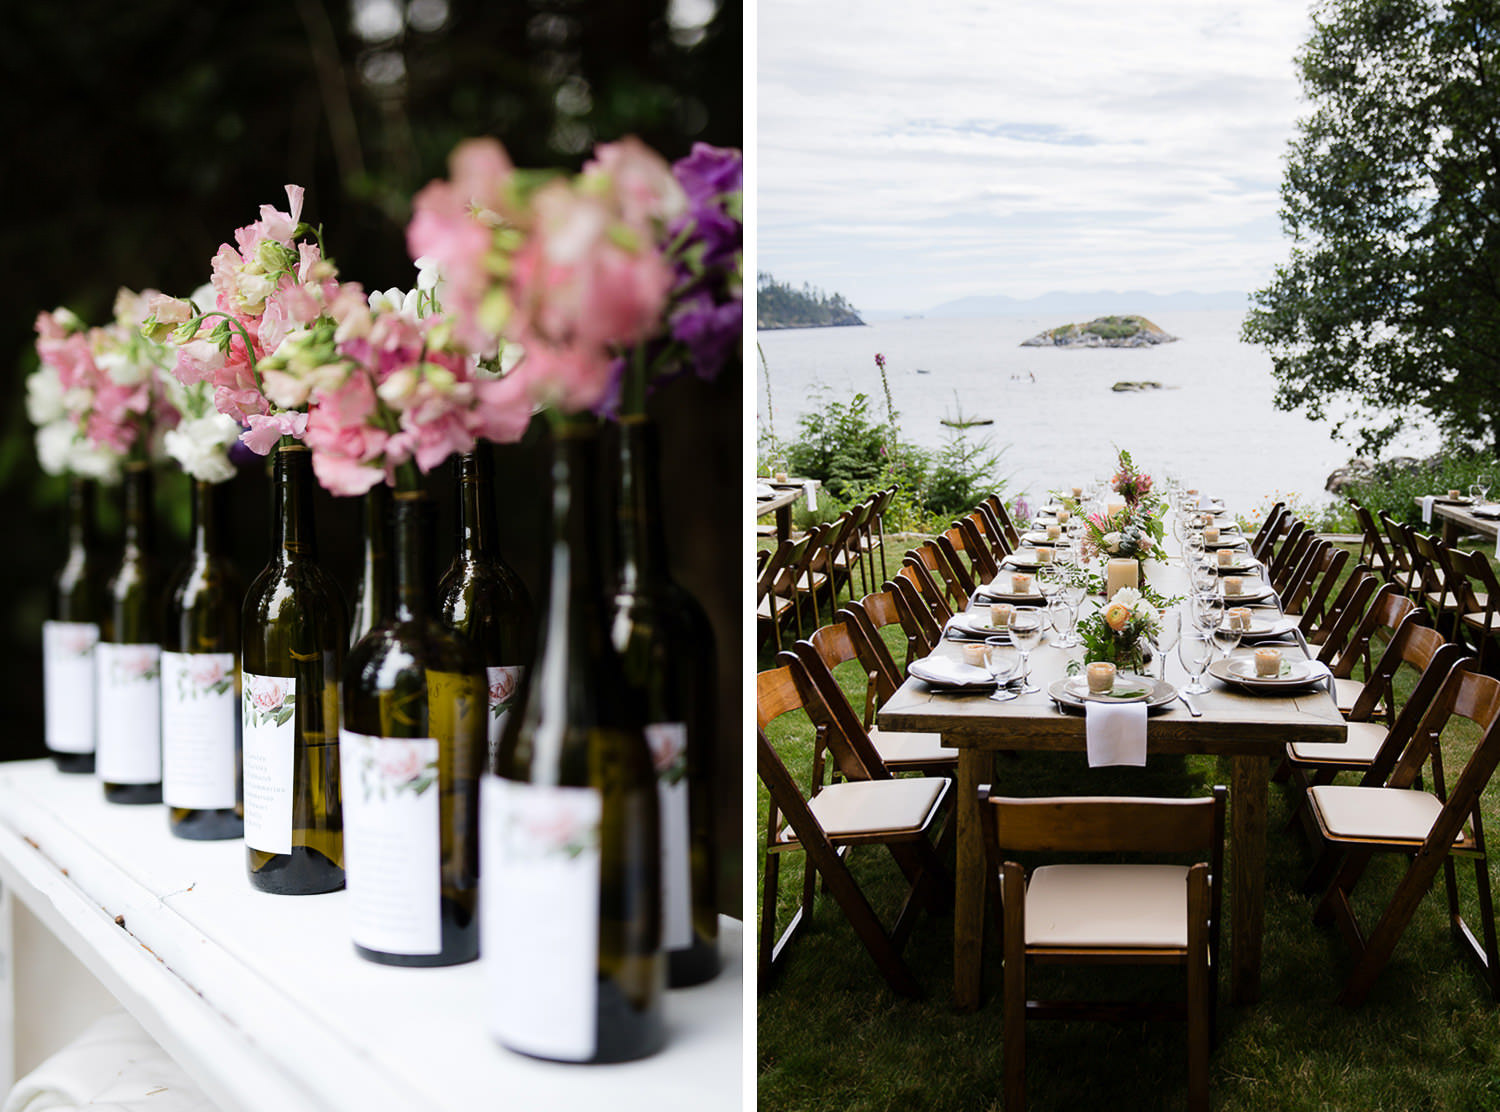 Seaside Rustic Boho wedding details and tablescape